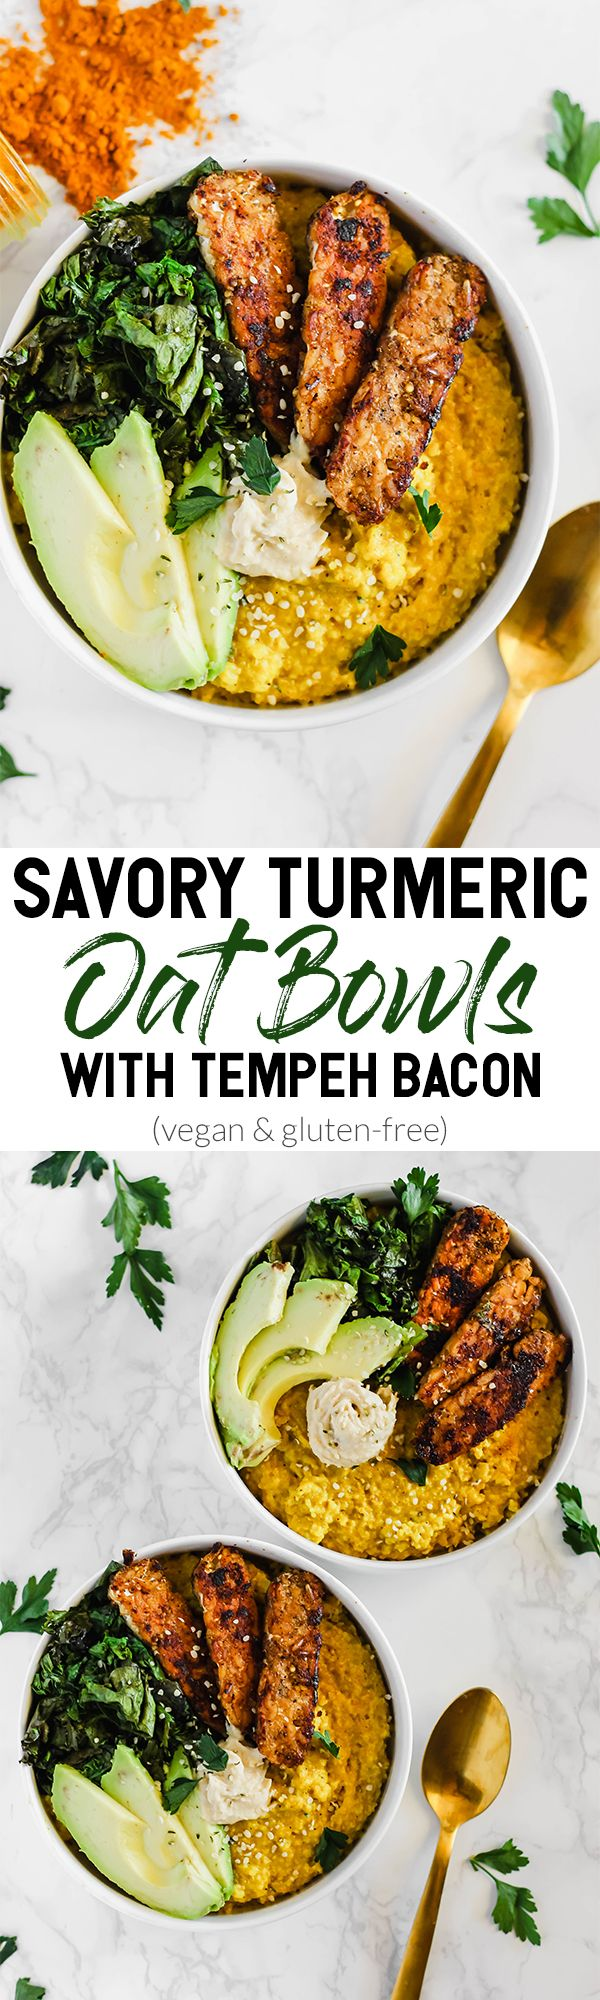 Savory Turmeric Oat Bowls with Tempeh Bacon